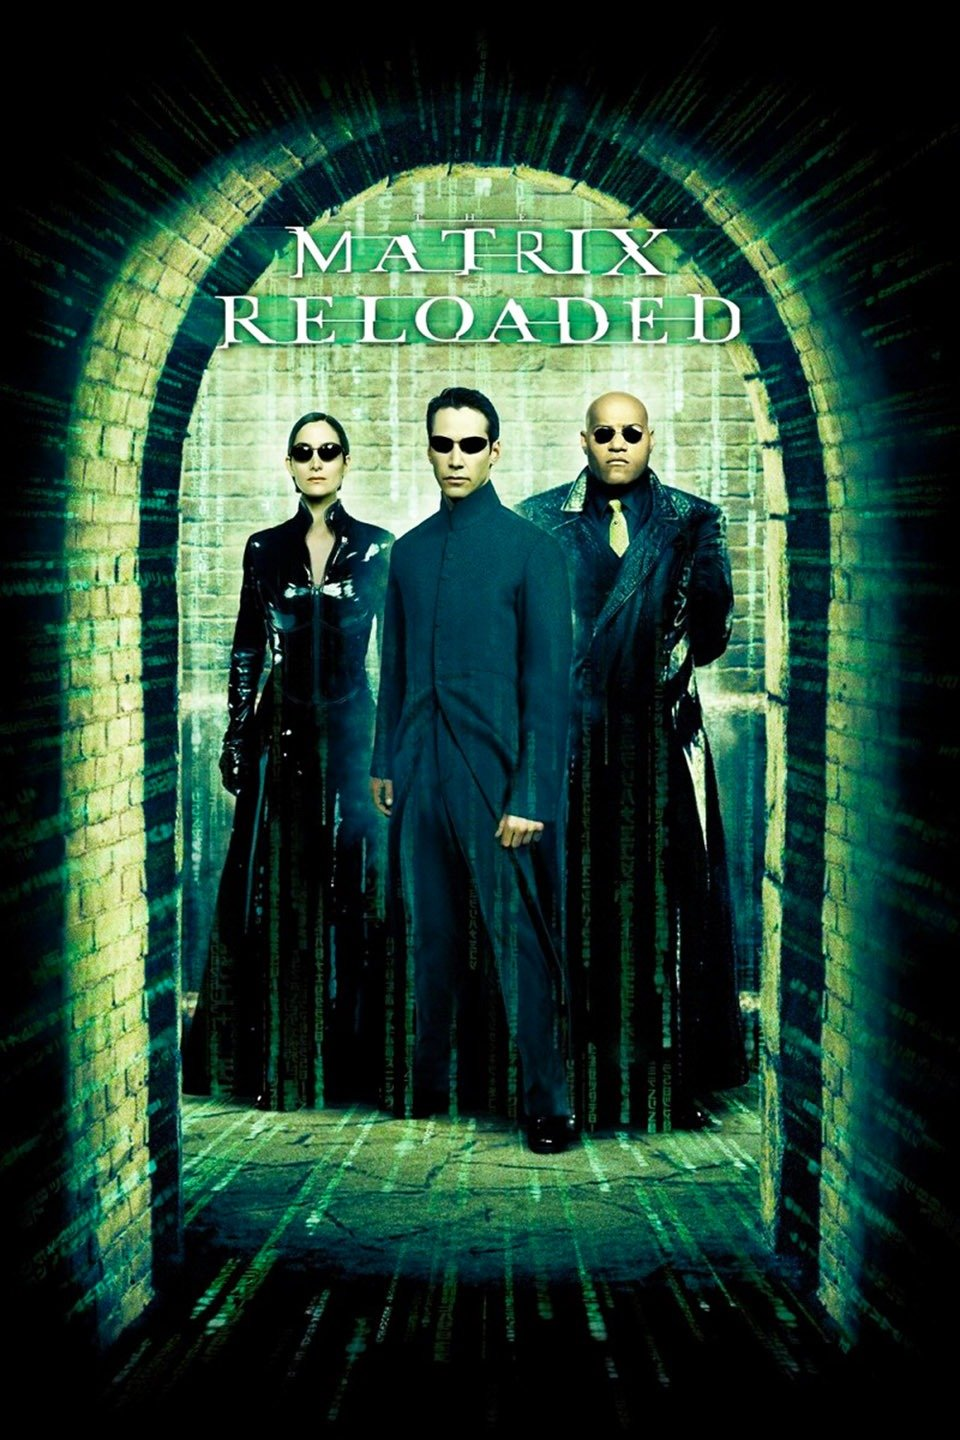 The Matrix Reloaded (2003) - Directed by: The WachowskisStarring: Keanu Reeves, Laurence Fishburne, Carrie Anne-Moss, Jada Pinkett-SmithRated: R for Sci Fi Violence, and Some SexualityRunning Time: 2h 18mTMM Score: 3.5 StarsSTRENGTHS: Fun, World Building, ActionWEAKNESSES: Story, Weak CGI